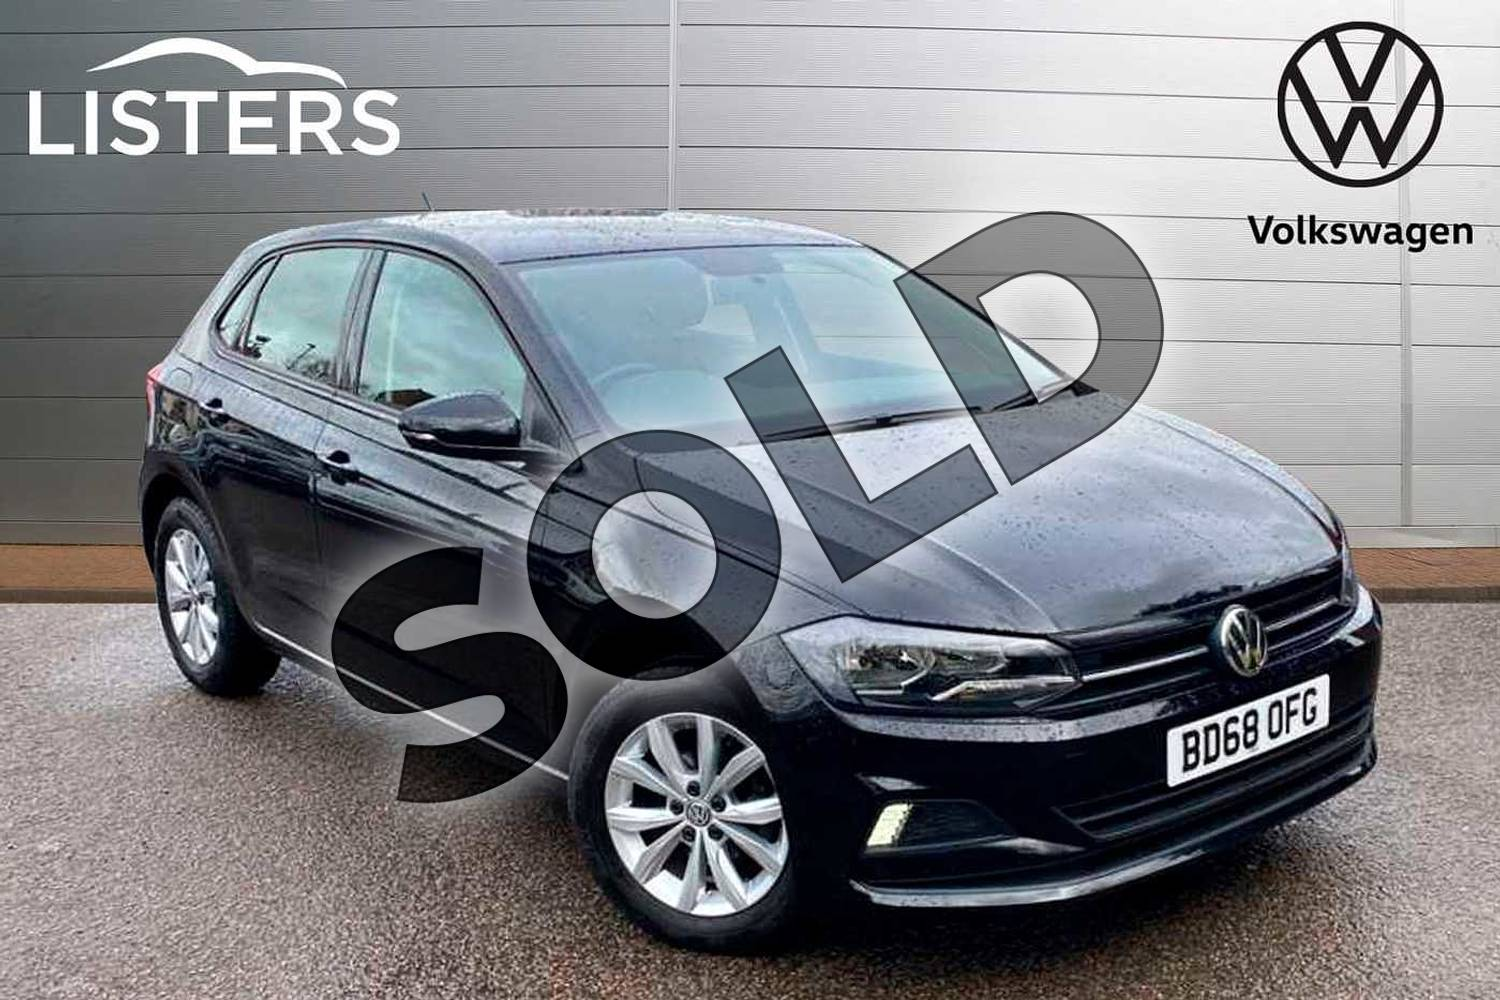 2018 Volkswagen Polo Hatchback 1.0 TSI 95 SE 5dr in Deep Black Pearl Effect at Listers Volkswagen Coventry